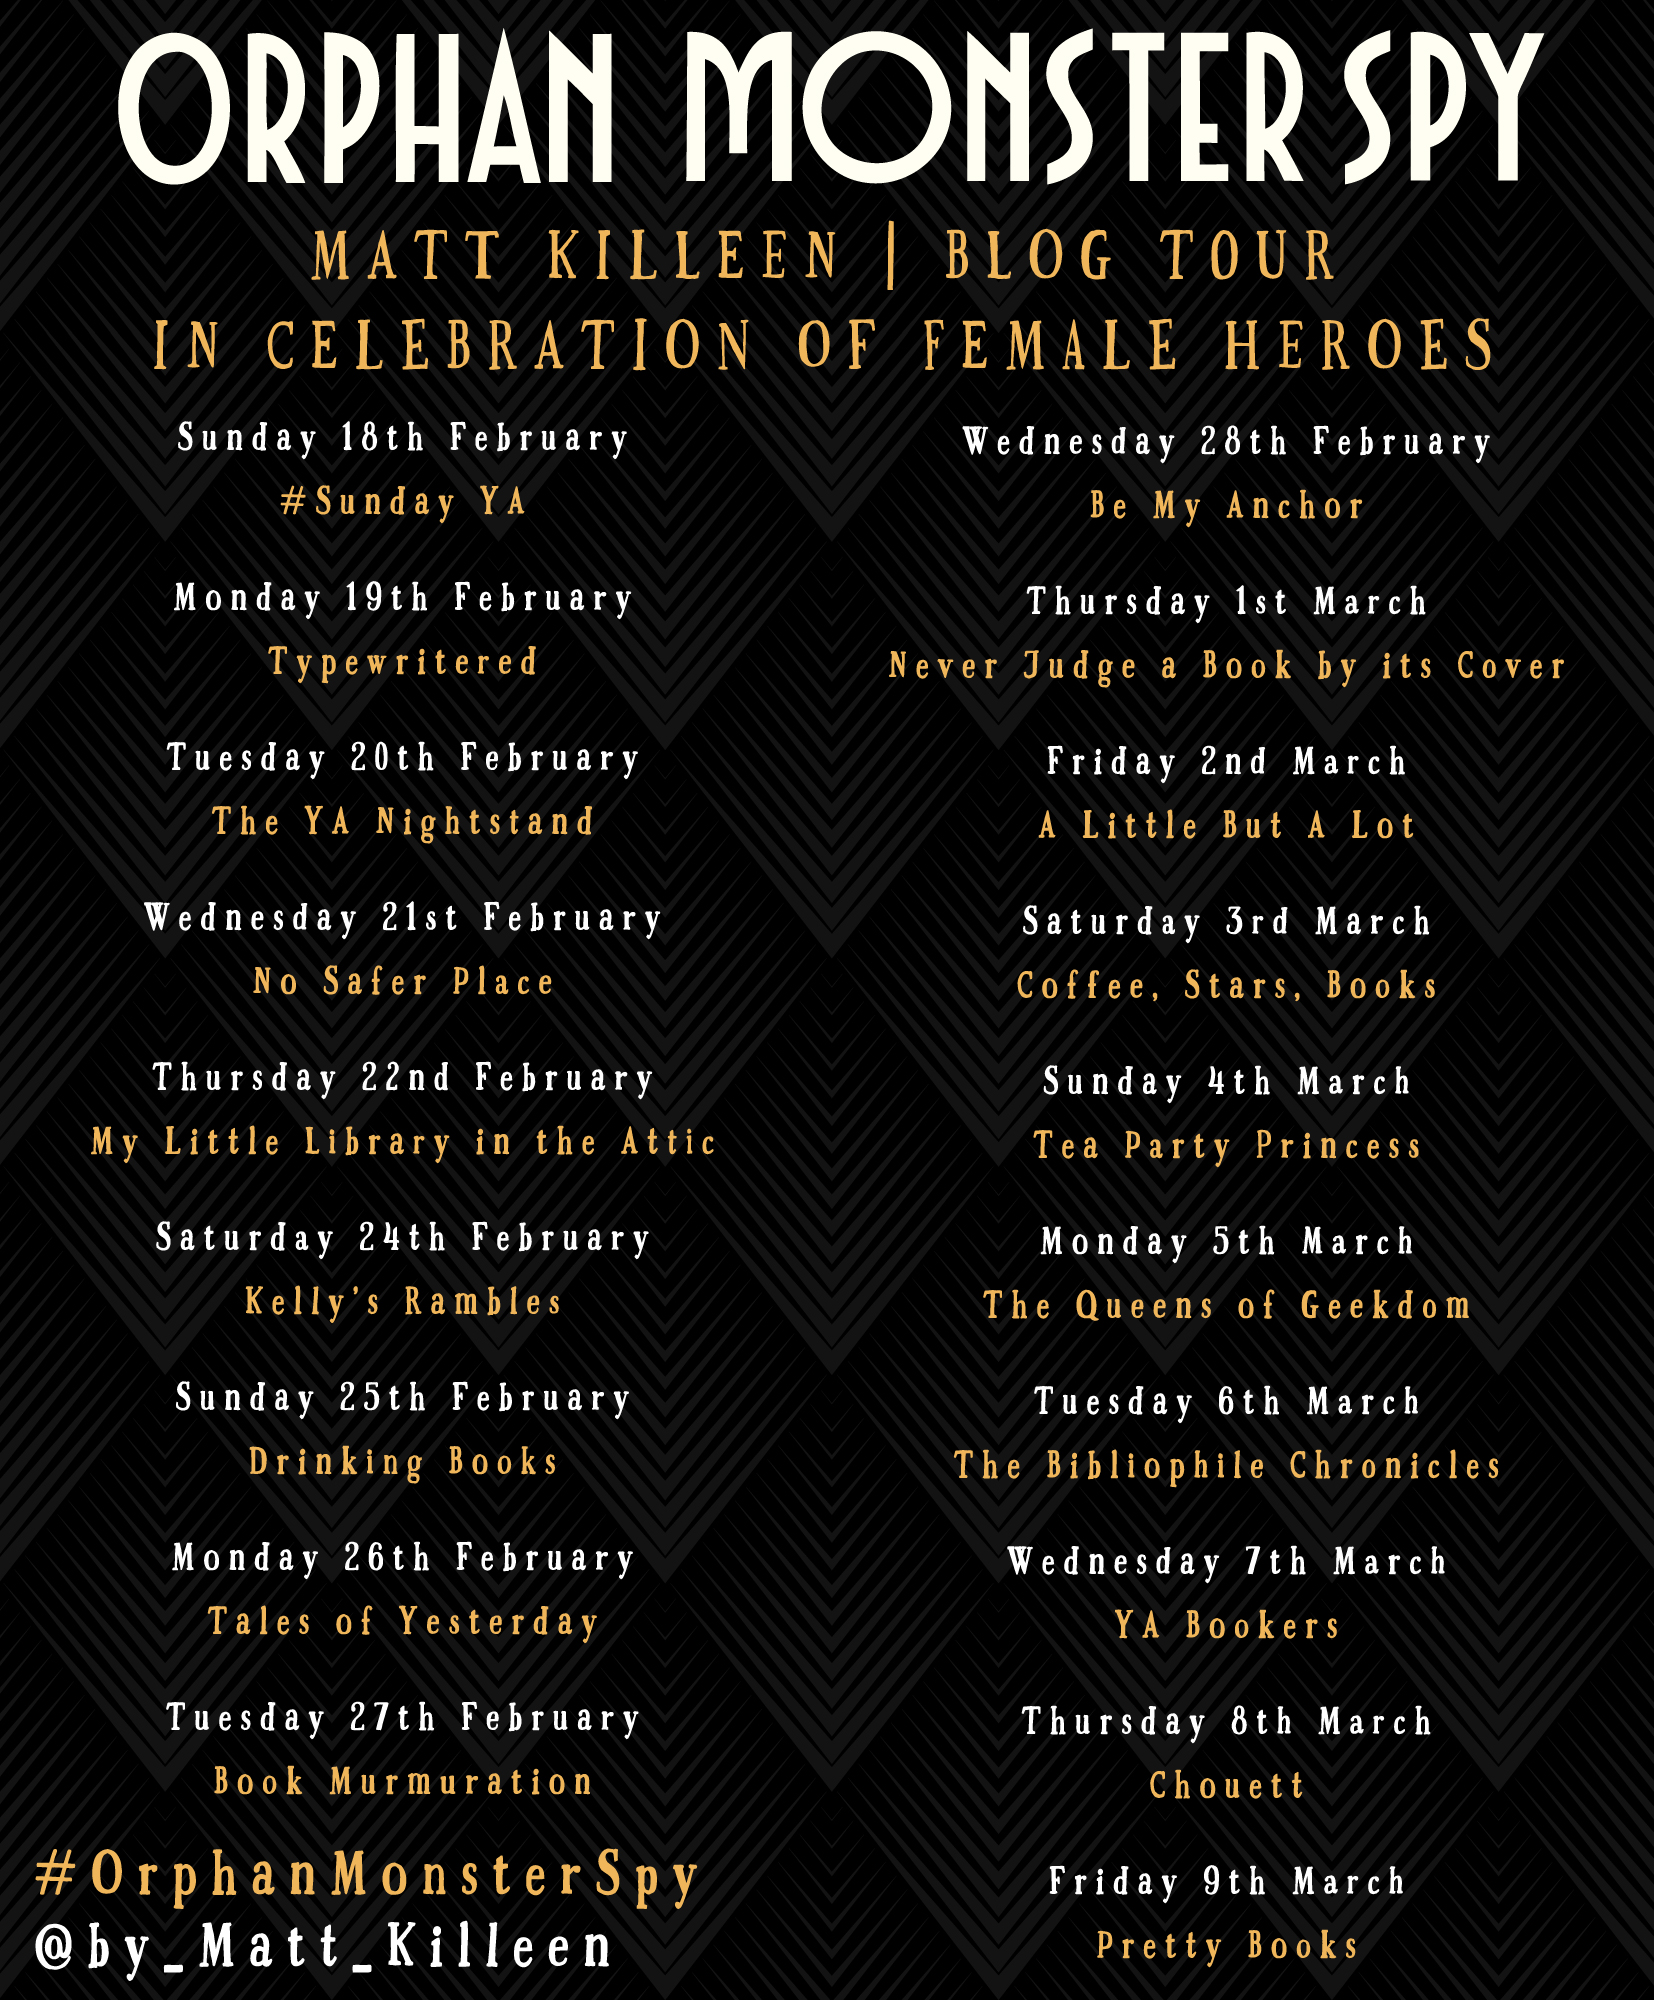 ORPHAN MONSTER SPY BLOG TOUR GRAPHIC